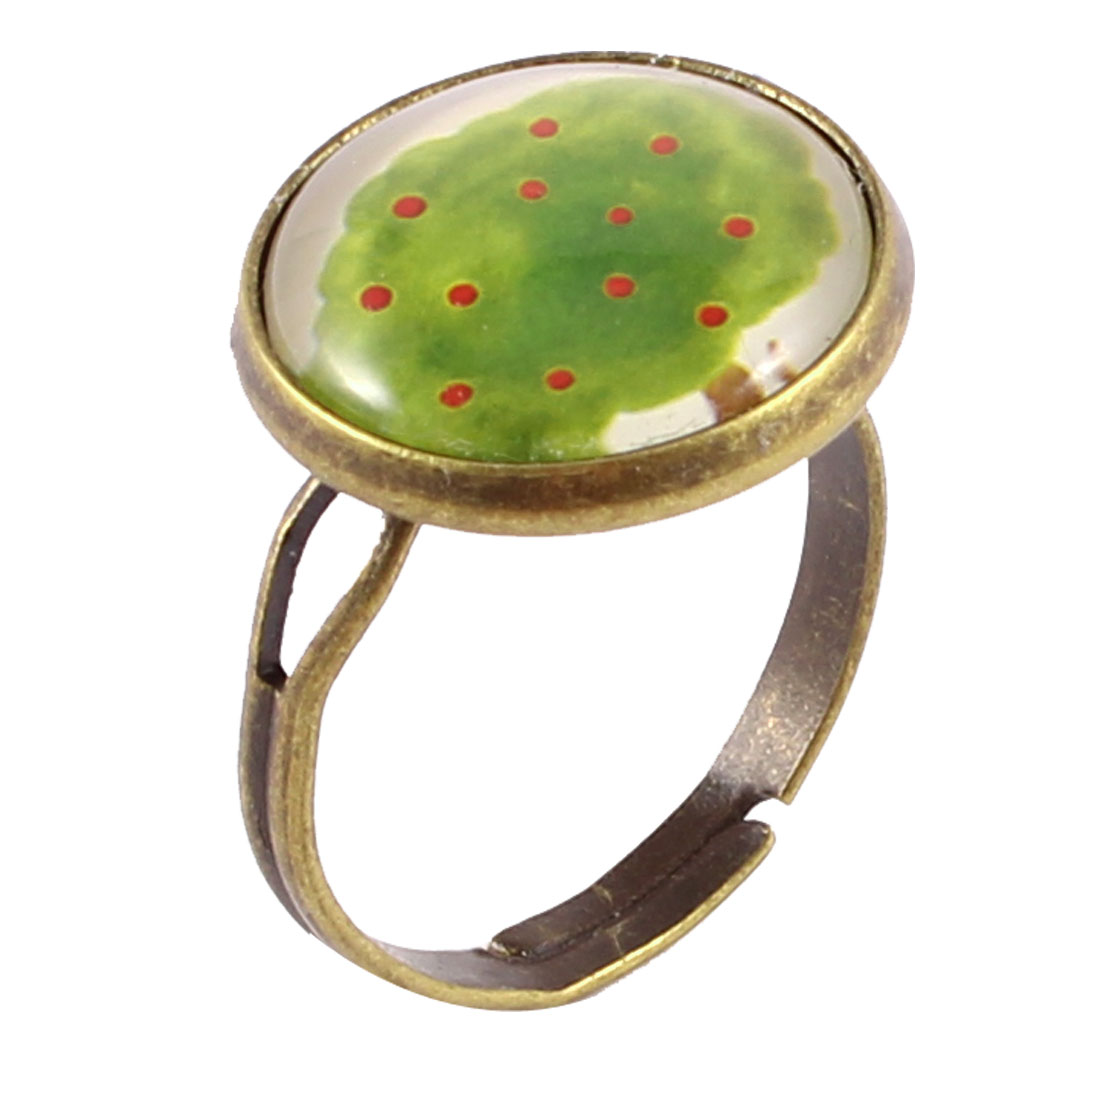 Woman Bronze Tone Metal Tree Print Round Decor Finger Ring UK M 1/2